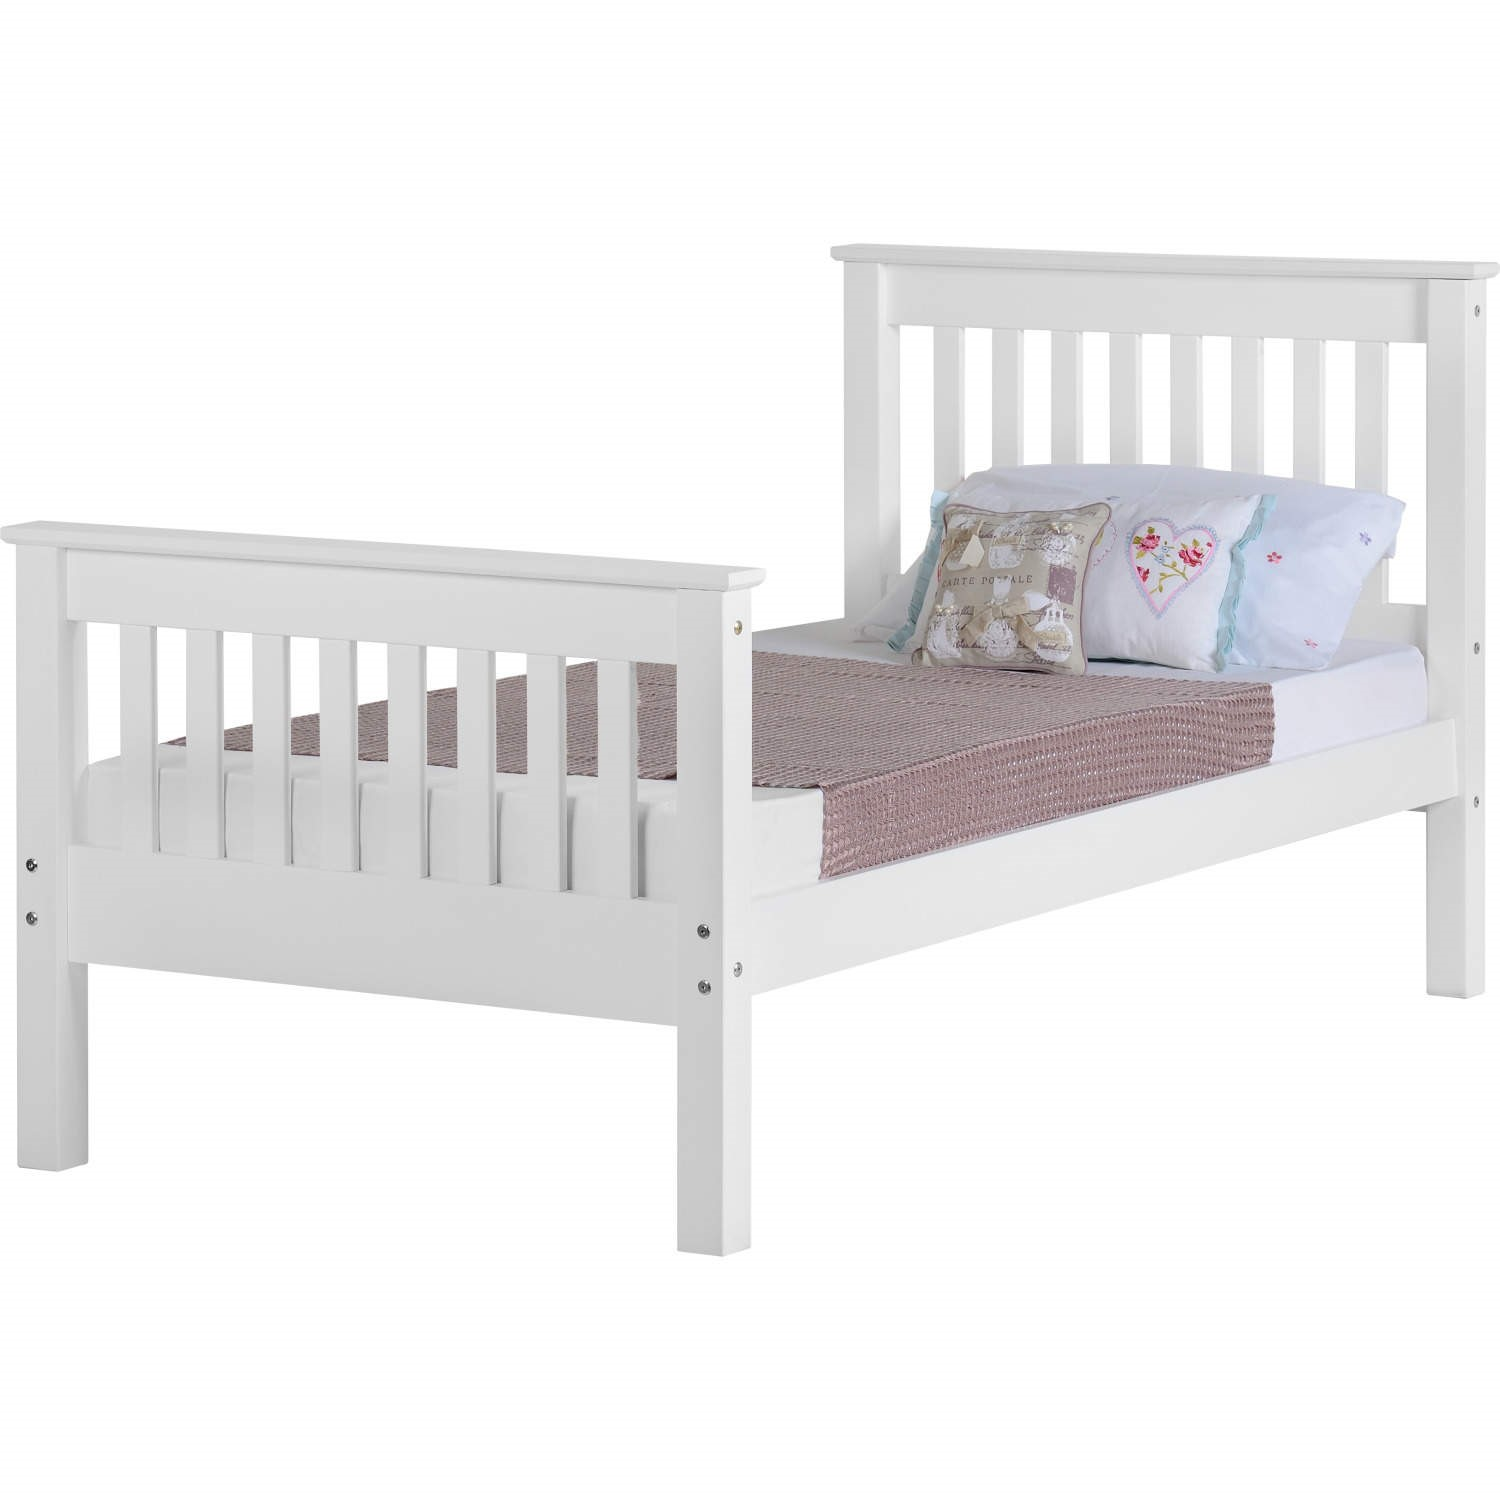 White Single Bed Uk Part - 49: Seconique Monaco Single Bed Frame High Foot End In White